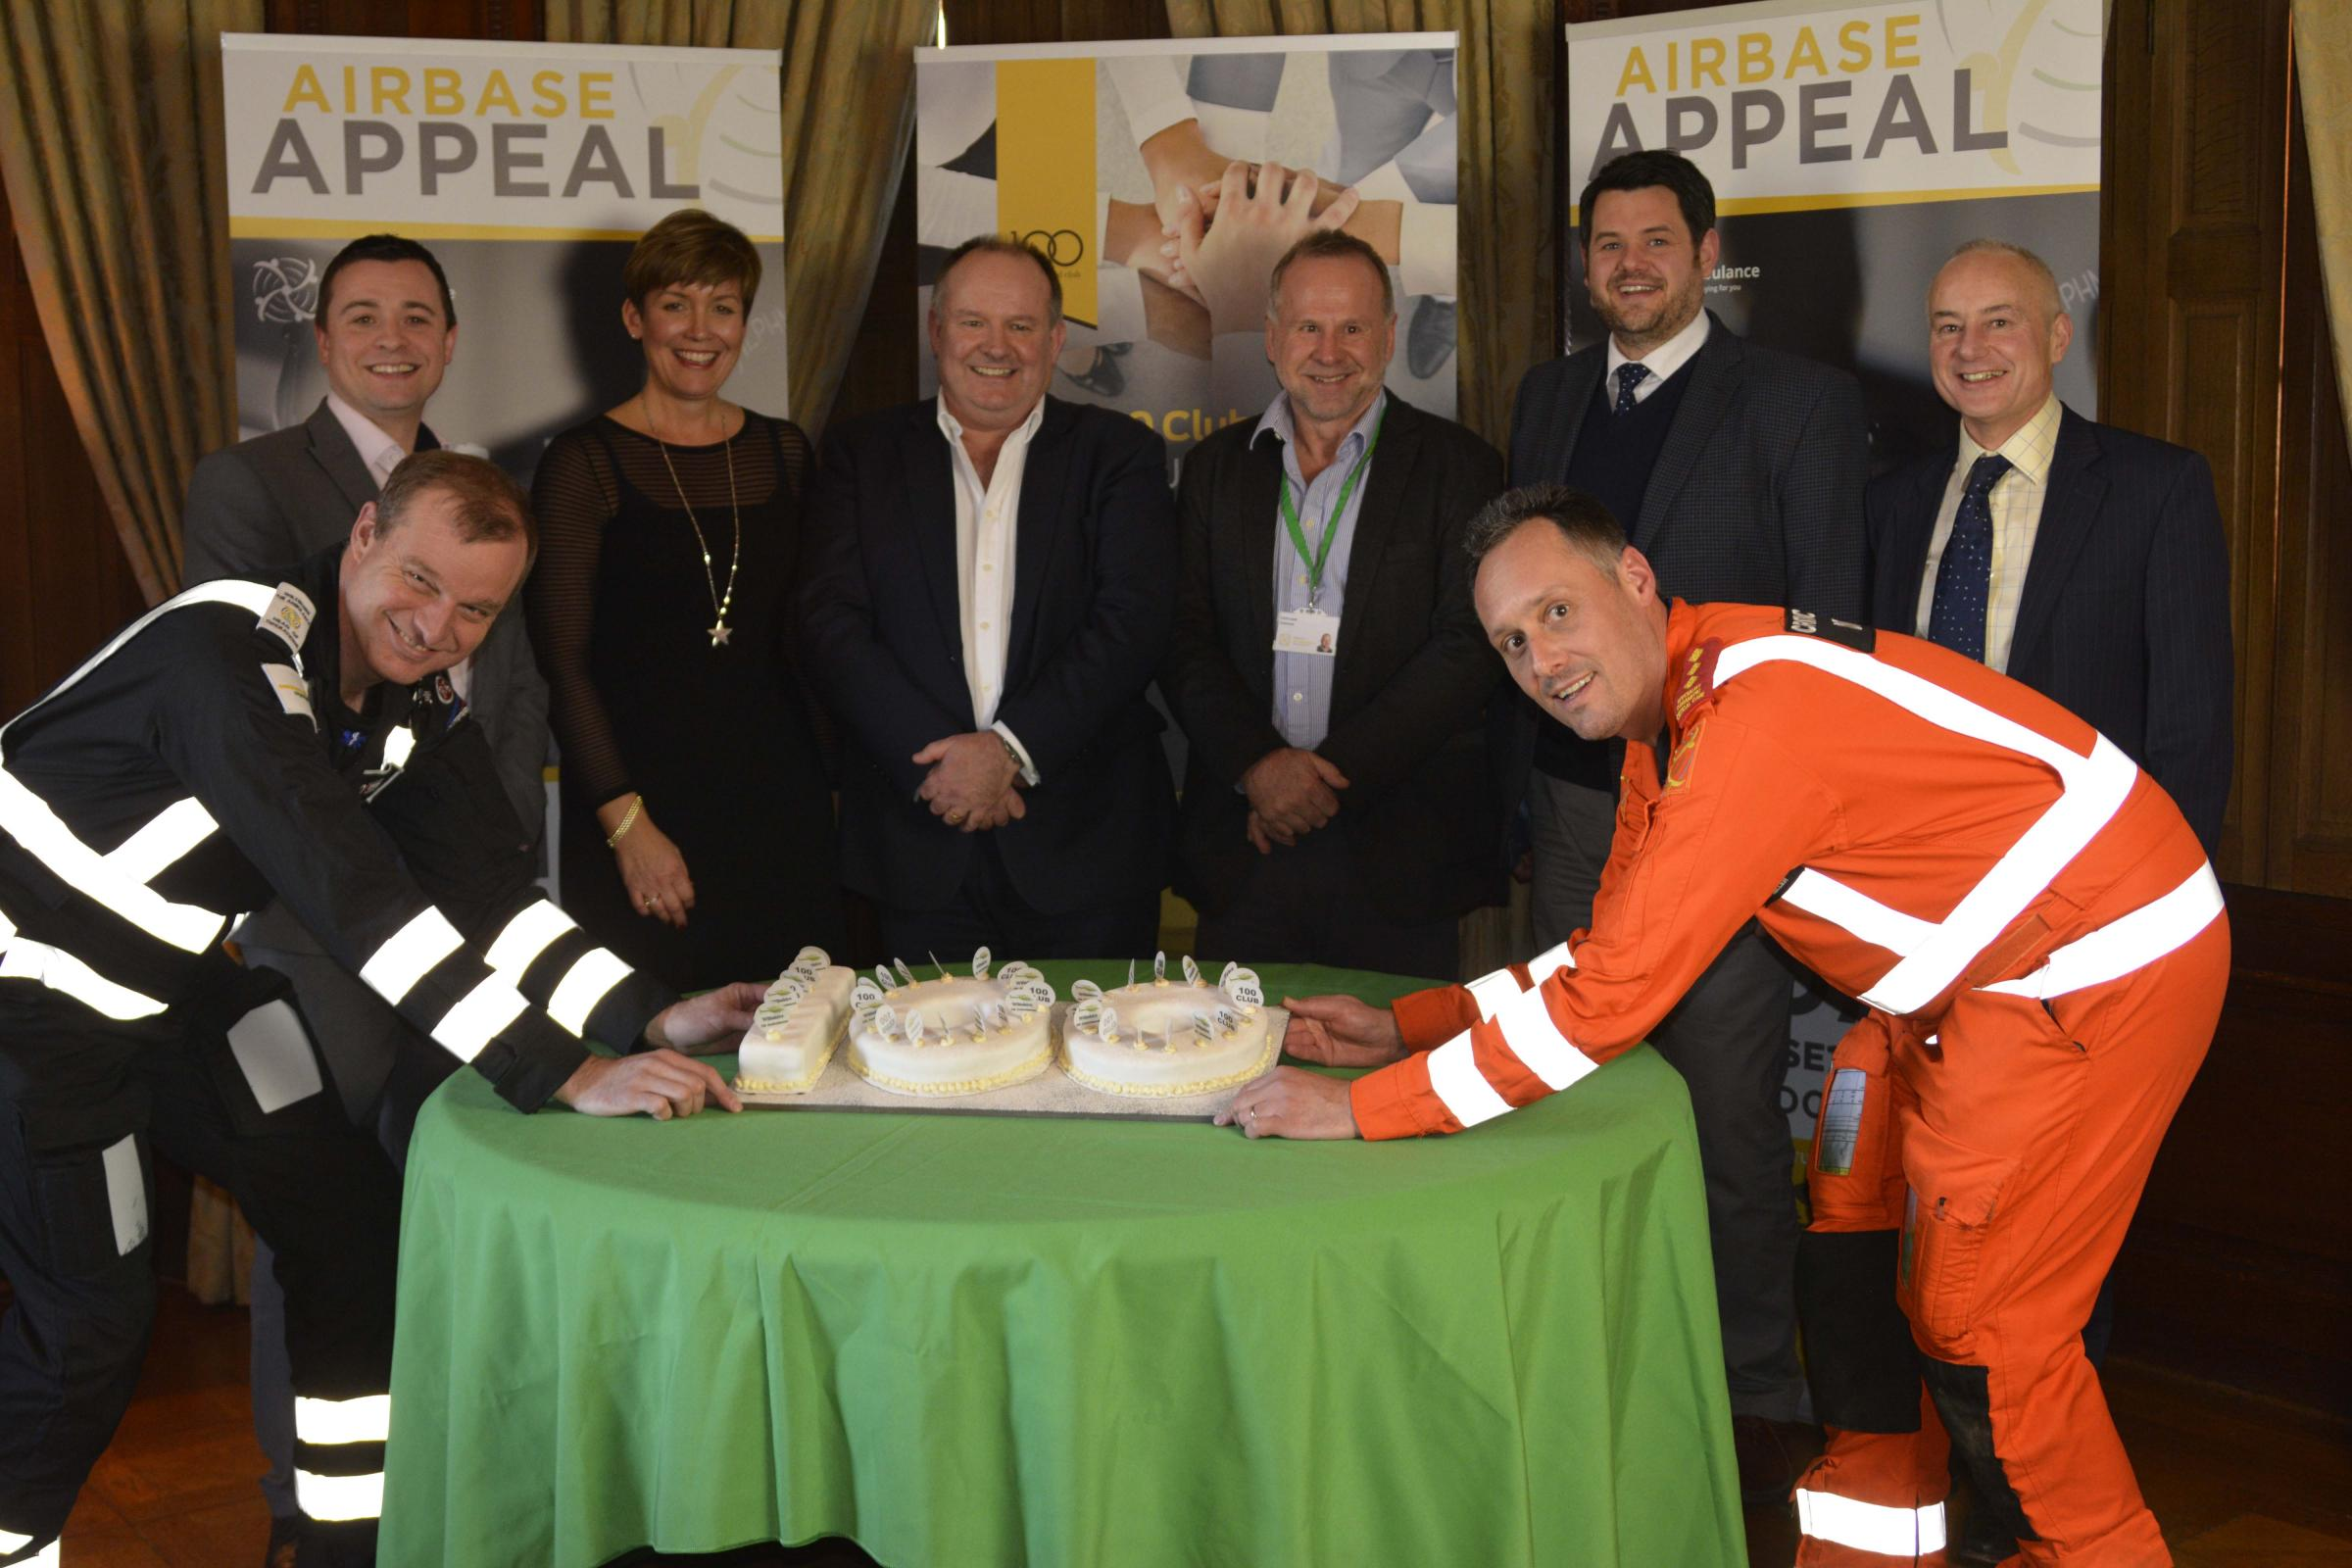 Kevin Reed, head of operations at WAA, Darren Harper, of Excalibur, Caron Staddon, of Coombe Castle, Jeffrey Thomas, of Hartham Park, Chris Lear, WAAchairman, Ben Clinch, of Kingstons, Kevin Basnett, of Goughs, and Richard Miller, critical care paramedic